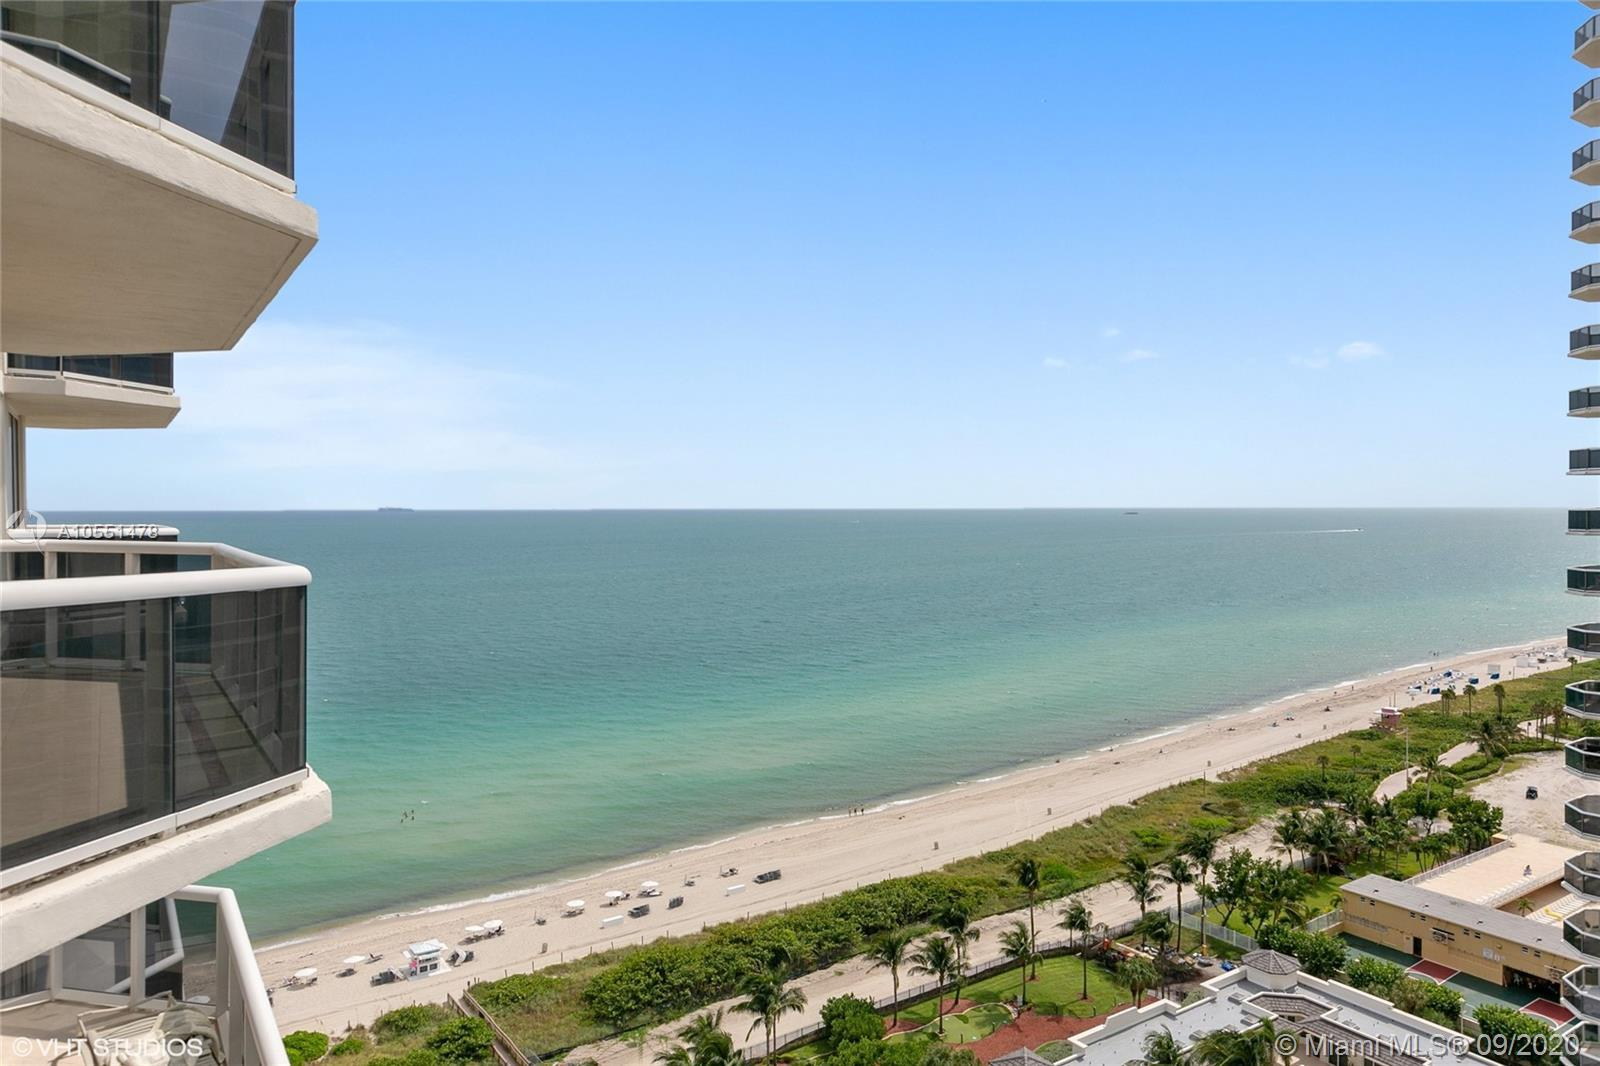 Magnificent Ocean and City views from this large 2 bedrooms, 2 full bath plus a den that was convert